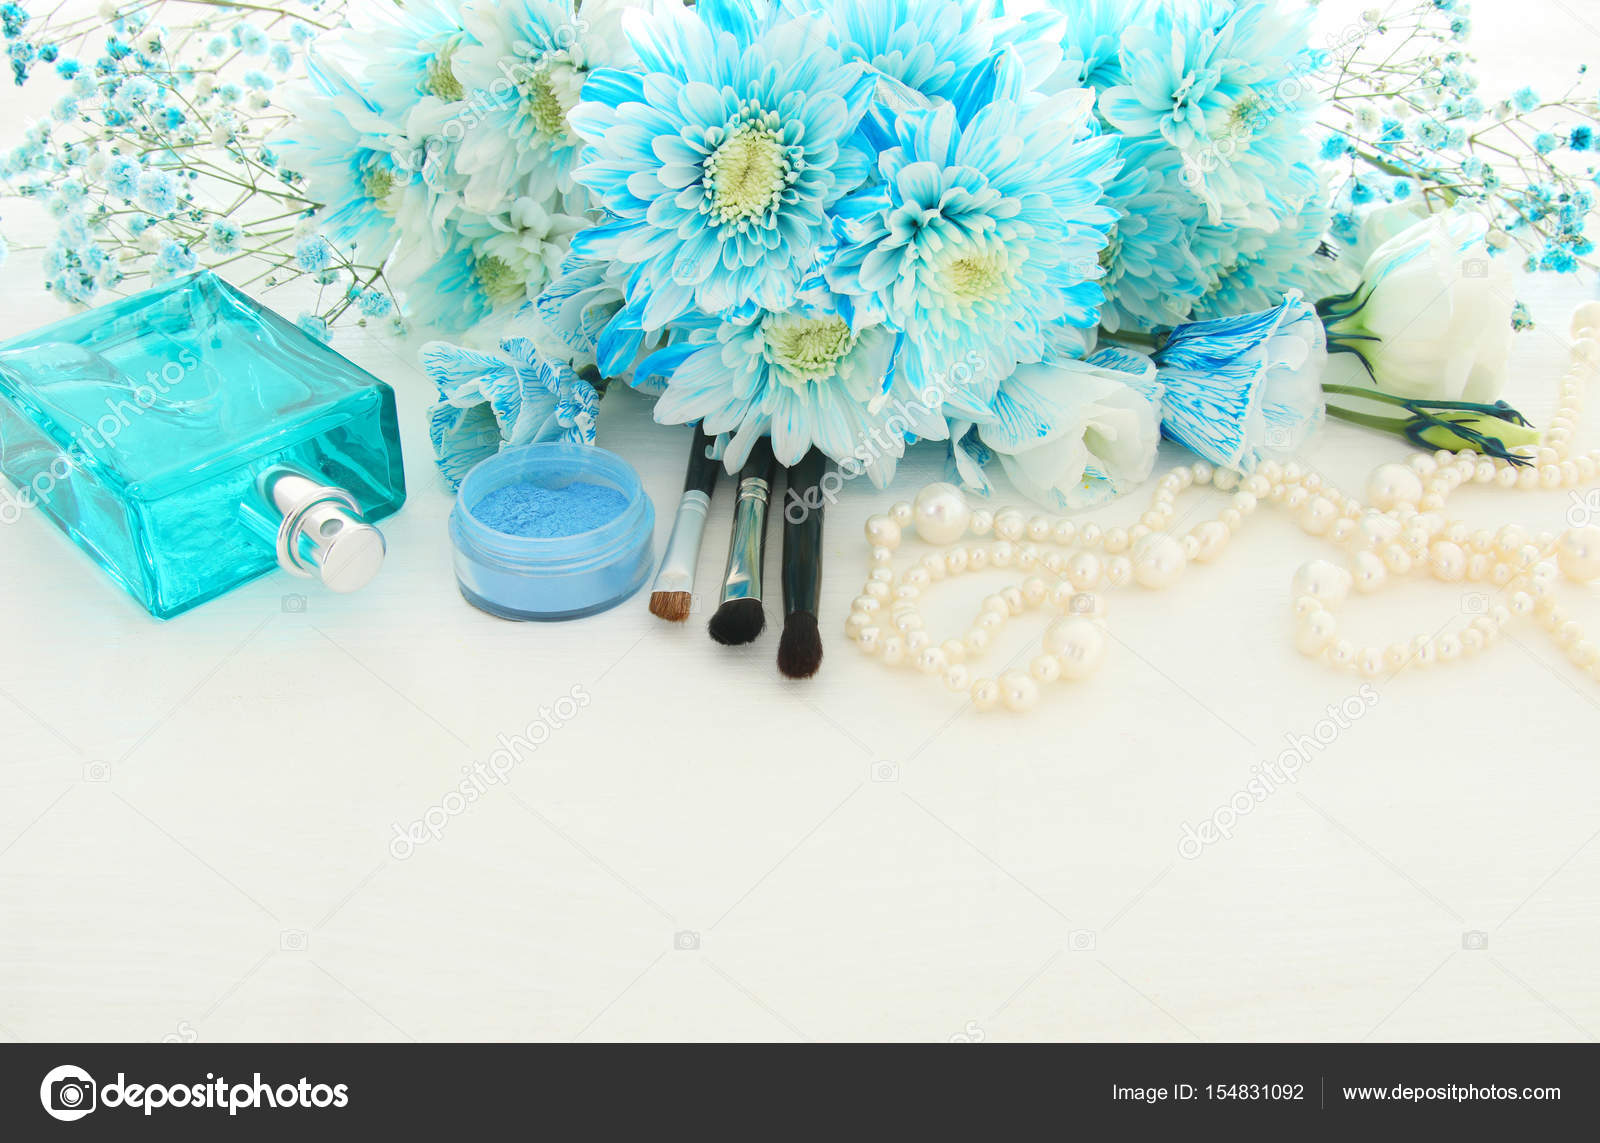 Beautiful and delicate blue flowers arrangement next to pearls beautiful and delicate blue flowers arrangement next to pearls necklace fresh perfume and makeup izmirmasajfo